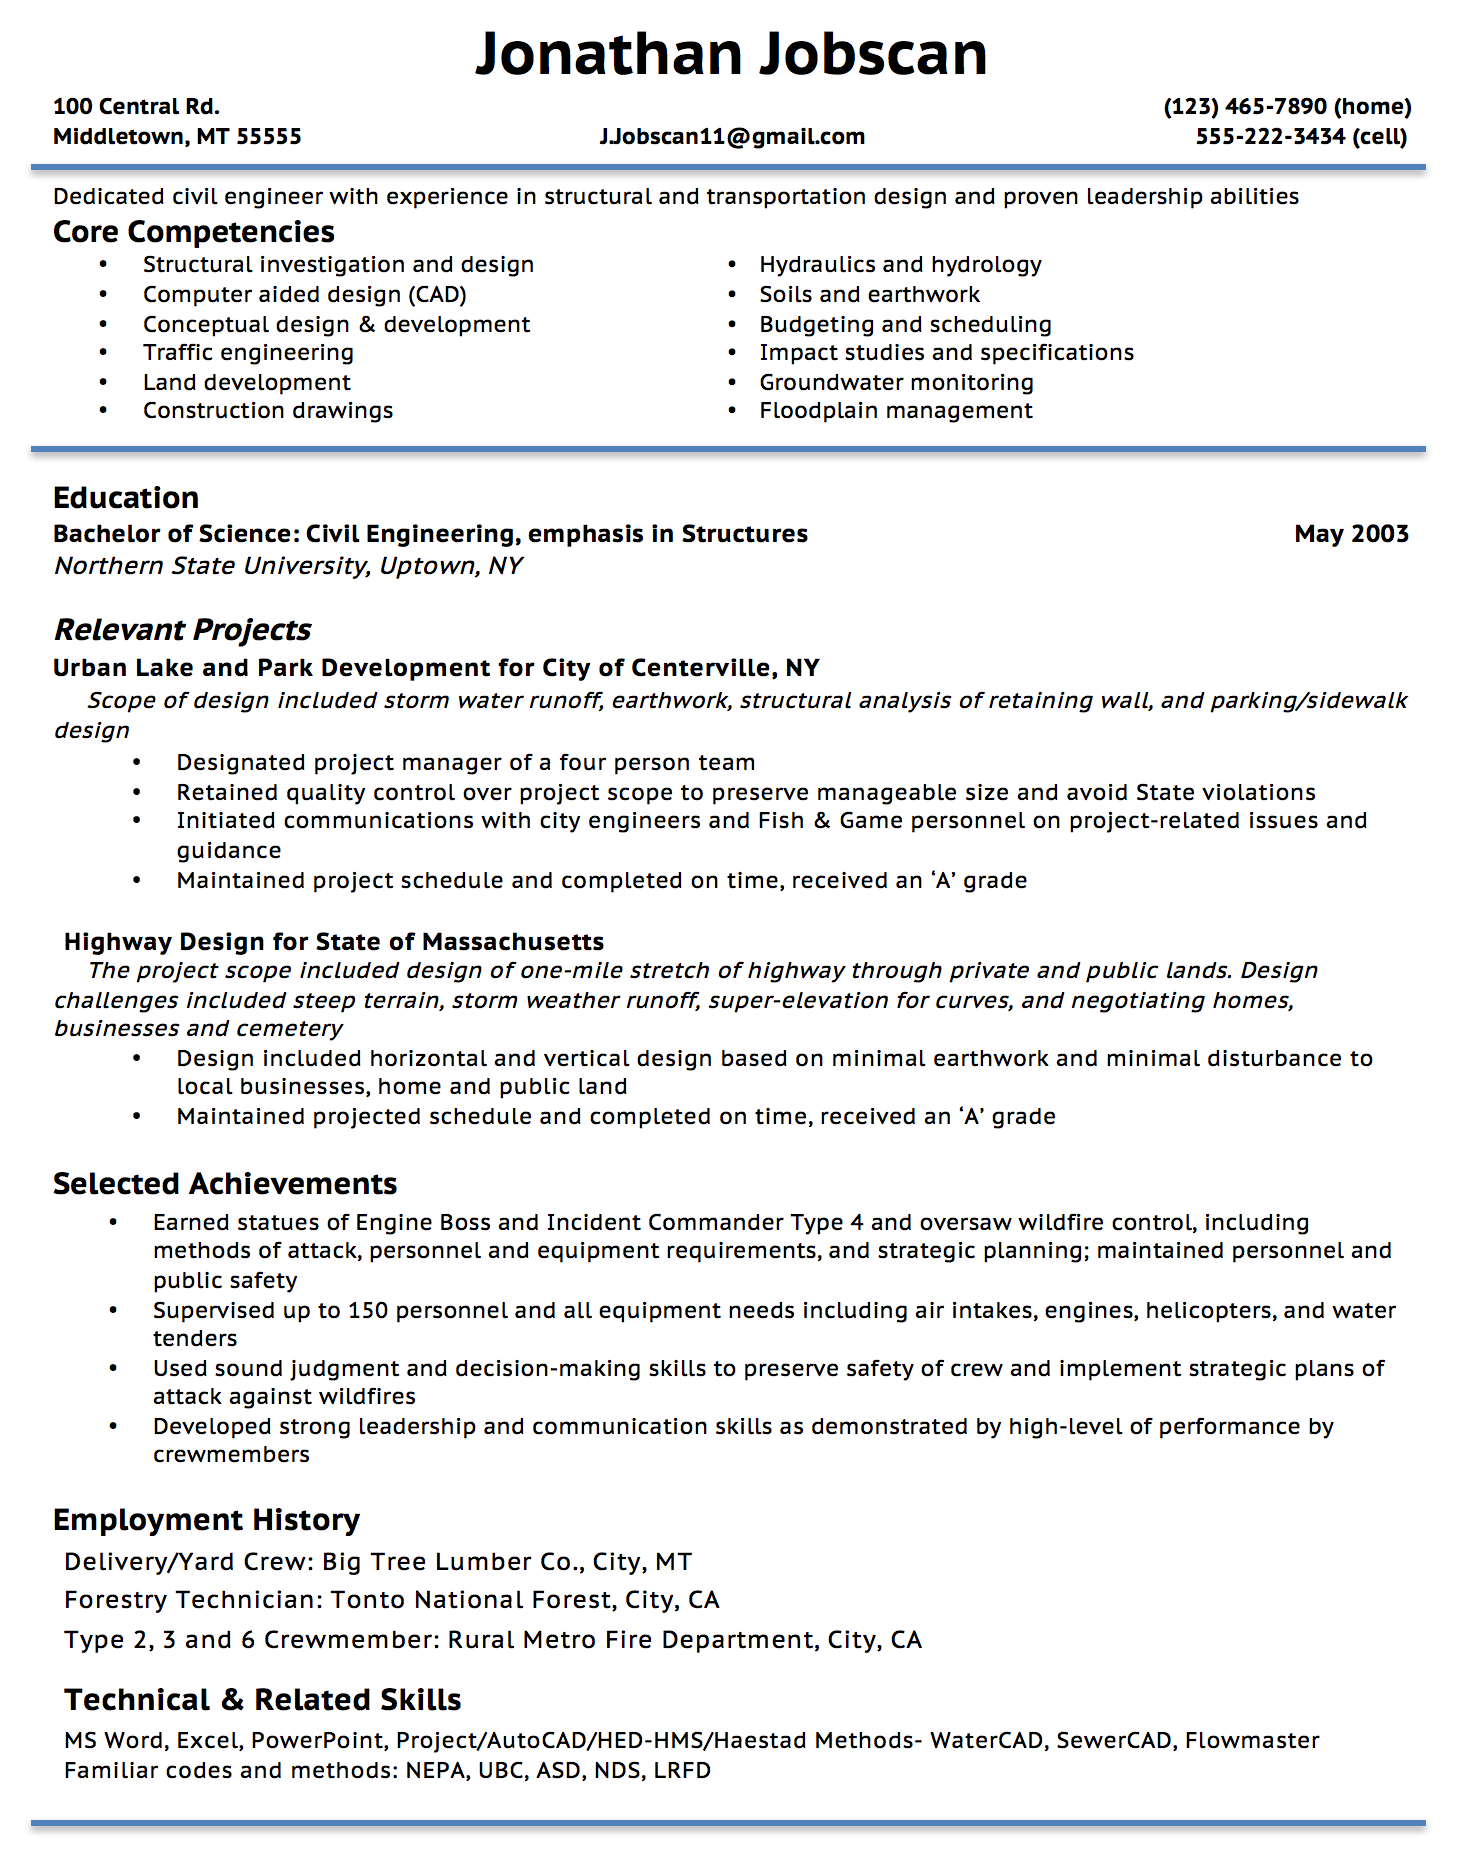 Opposenewapstandardsus  Mesmerizing Resume Writing Guide  Jobscan With Inspiring Example Of A Functional Resume Format With Amusing Teenage Resumes Also Sample Property Manager Resume In Addition Resume Abilities And Ekg Technician Resume As Well As Nick Saban Resume Additionally Maintenance Resume Examples From Jobscanco With Opposenewapstandardsus  Inspiring Resume Writing Guide  Jobscan With Amusing Example Of A Functional Resume Format And Mesmerizing Teenage Resumes Also Sample Property Manager Resume In Addition Resume Abilities From Jobscanco